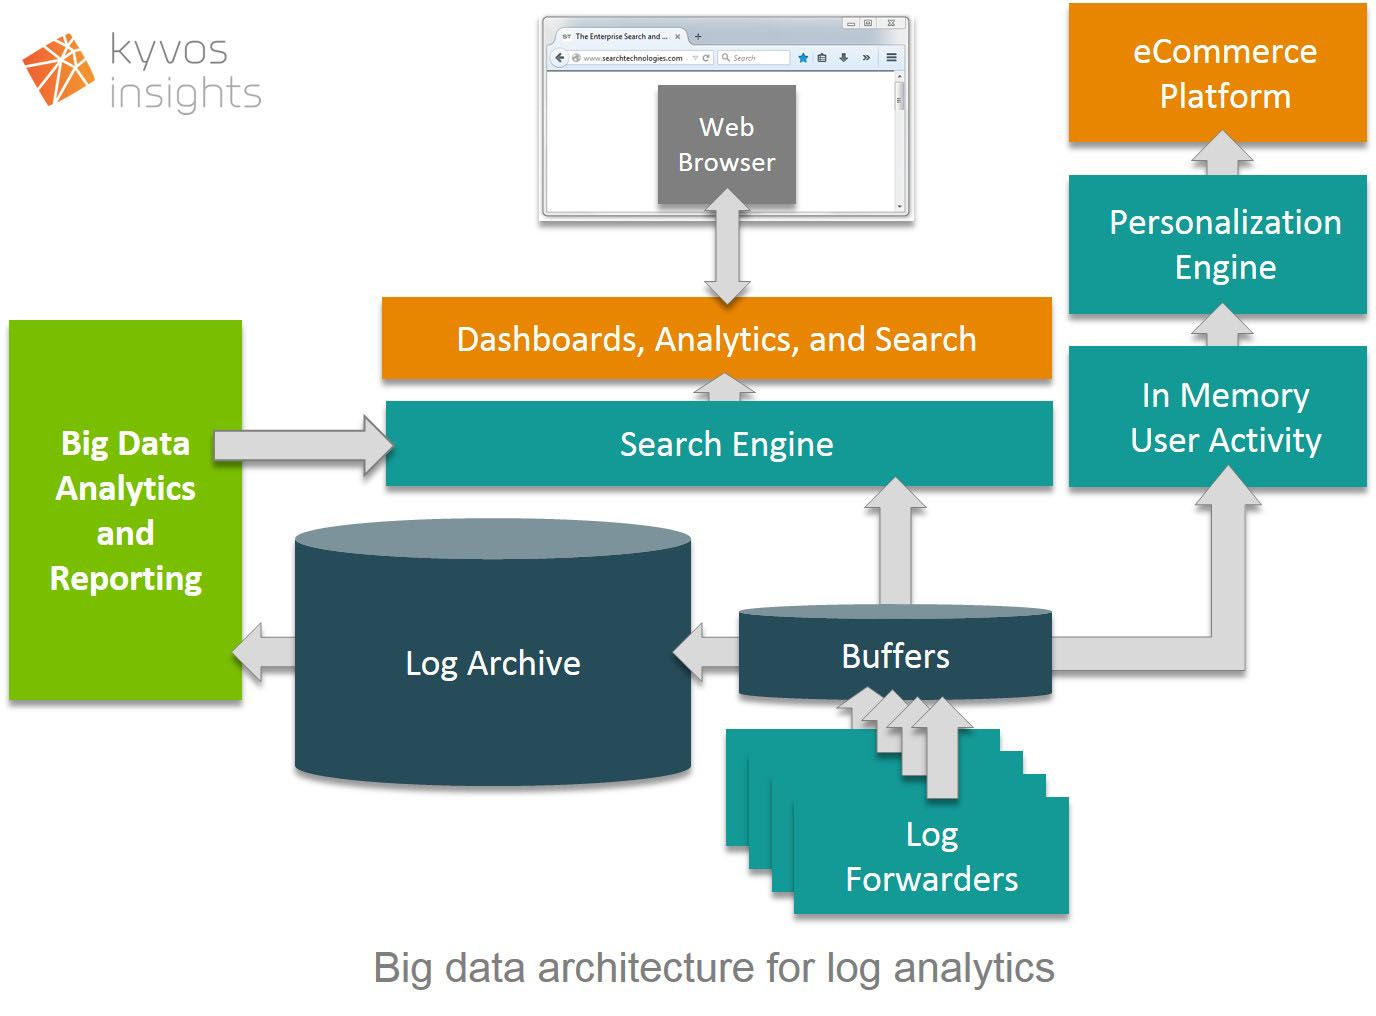 Big data architecture for log analytics kyvos insights for Architecture big data